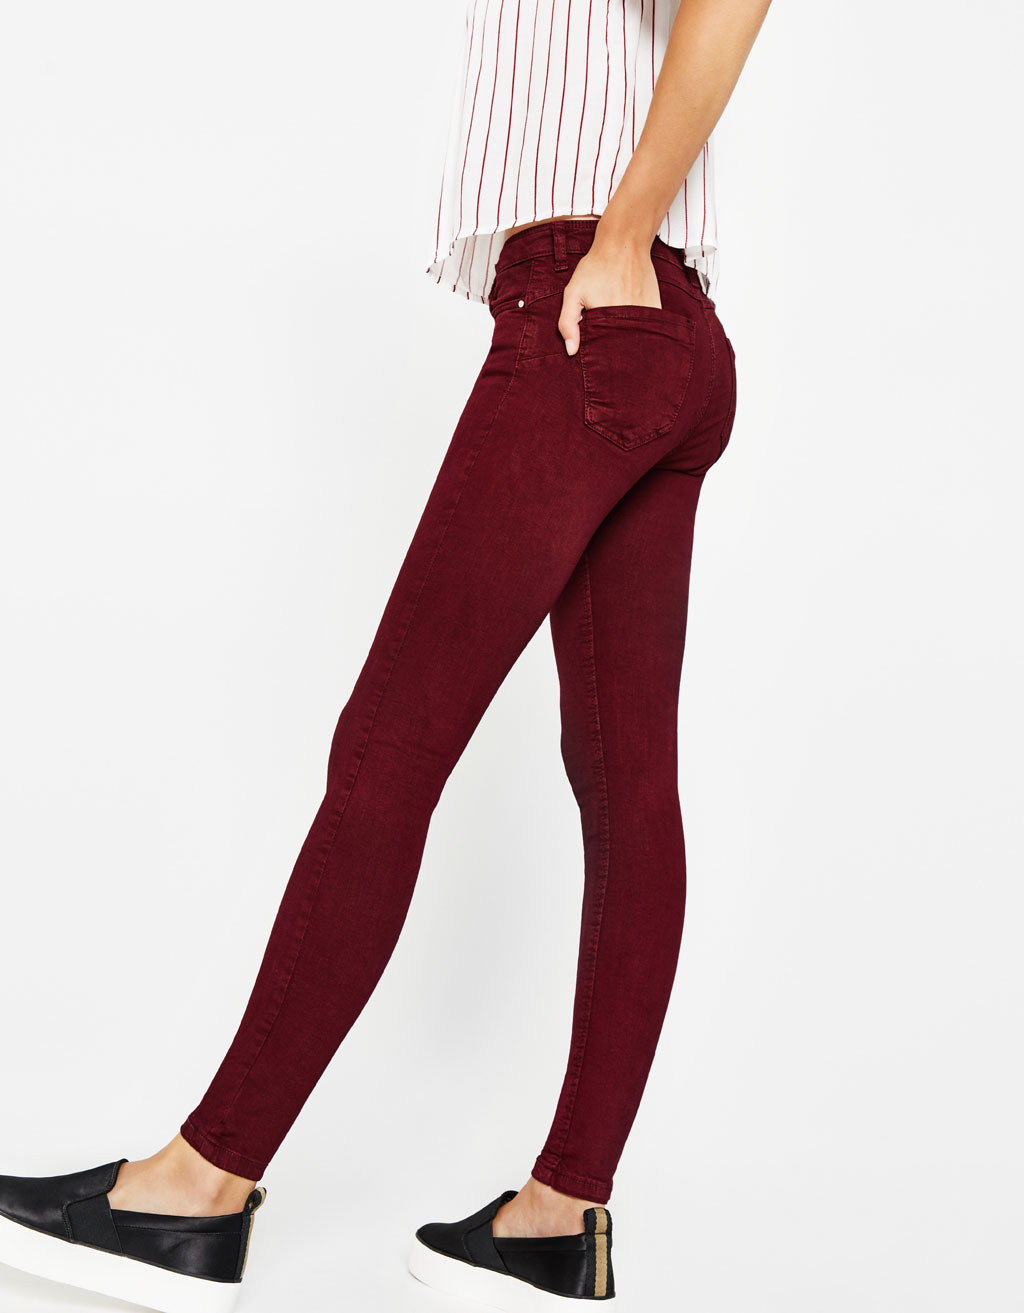 Five-pocket push-up jeans